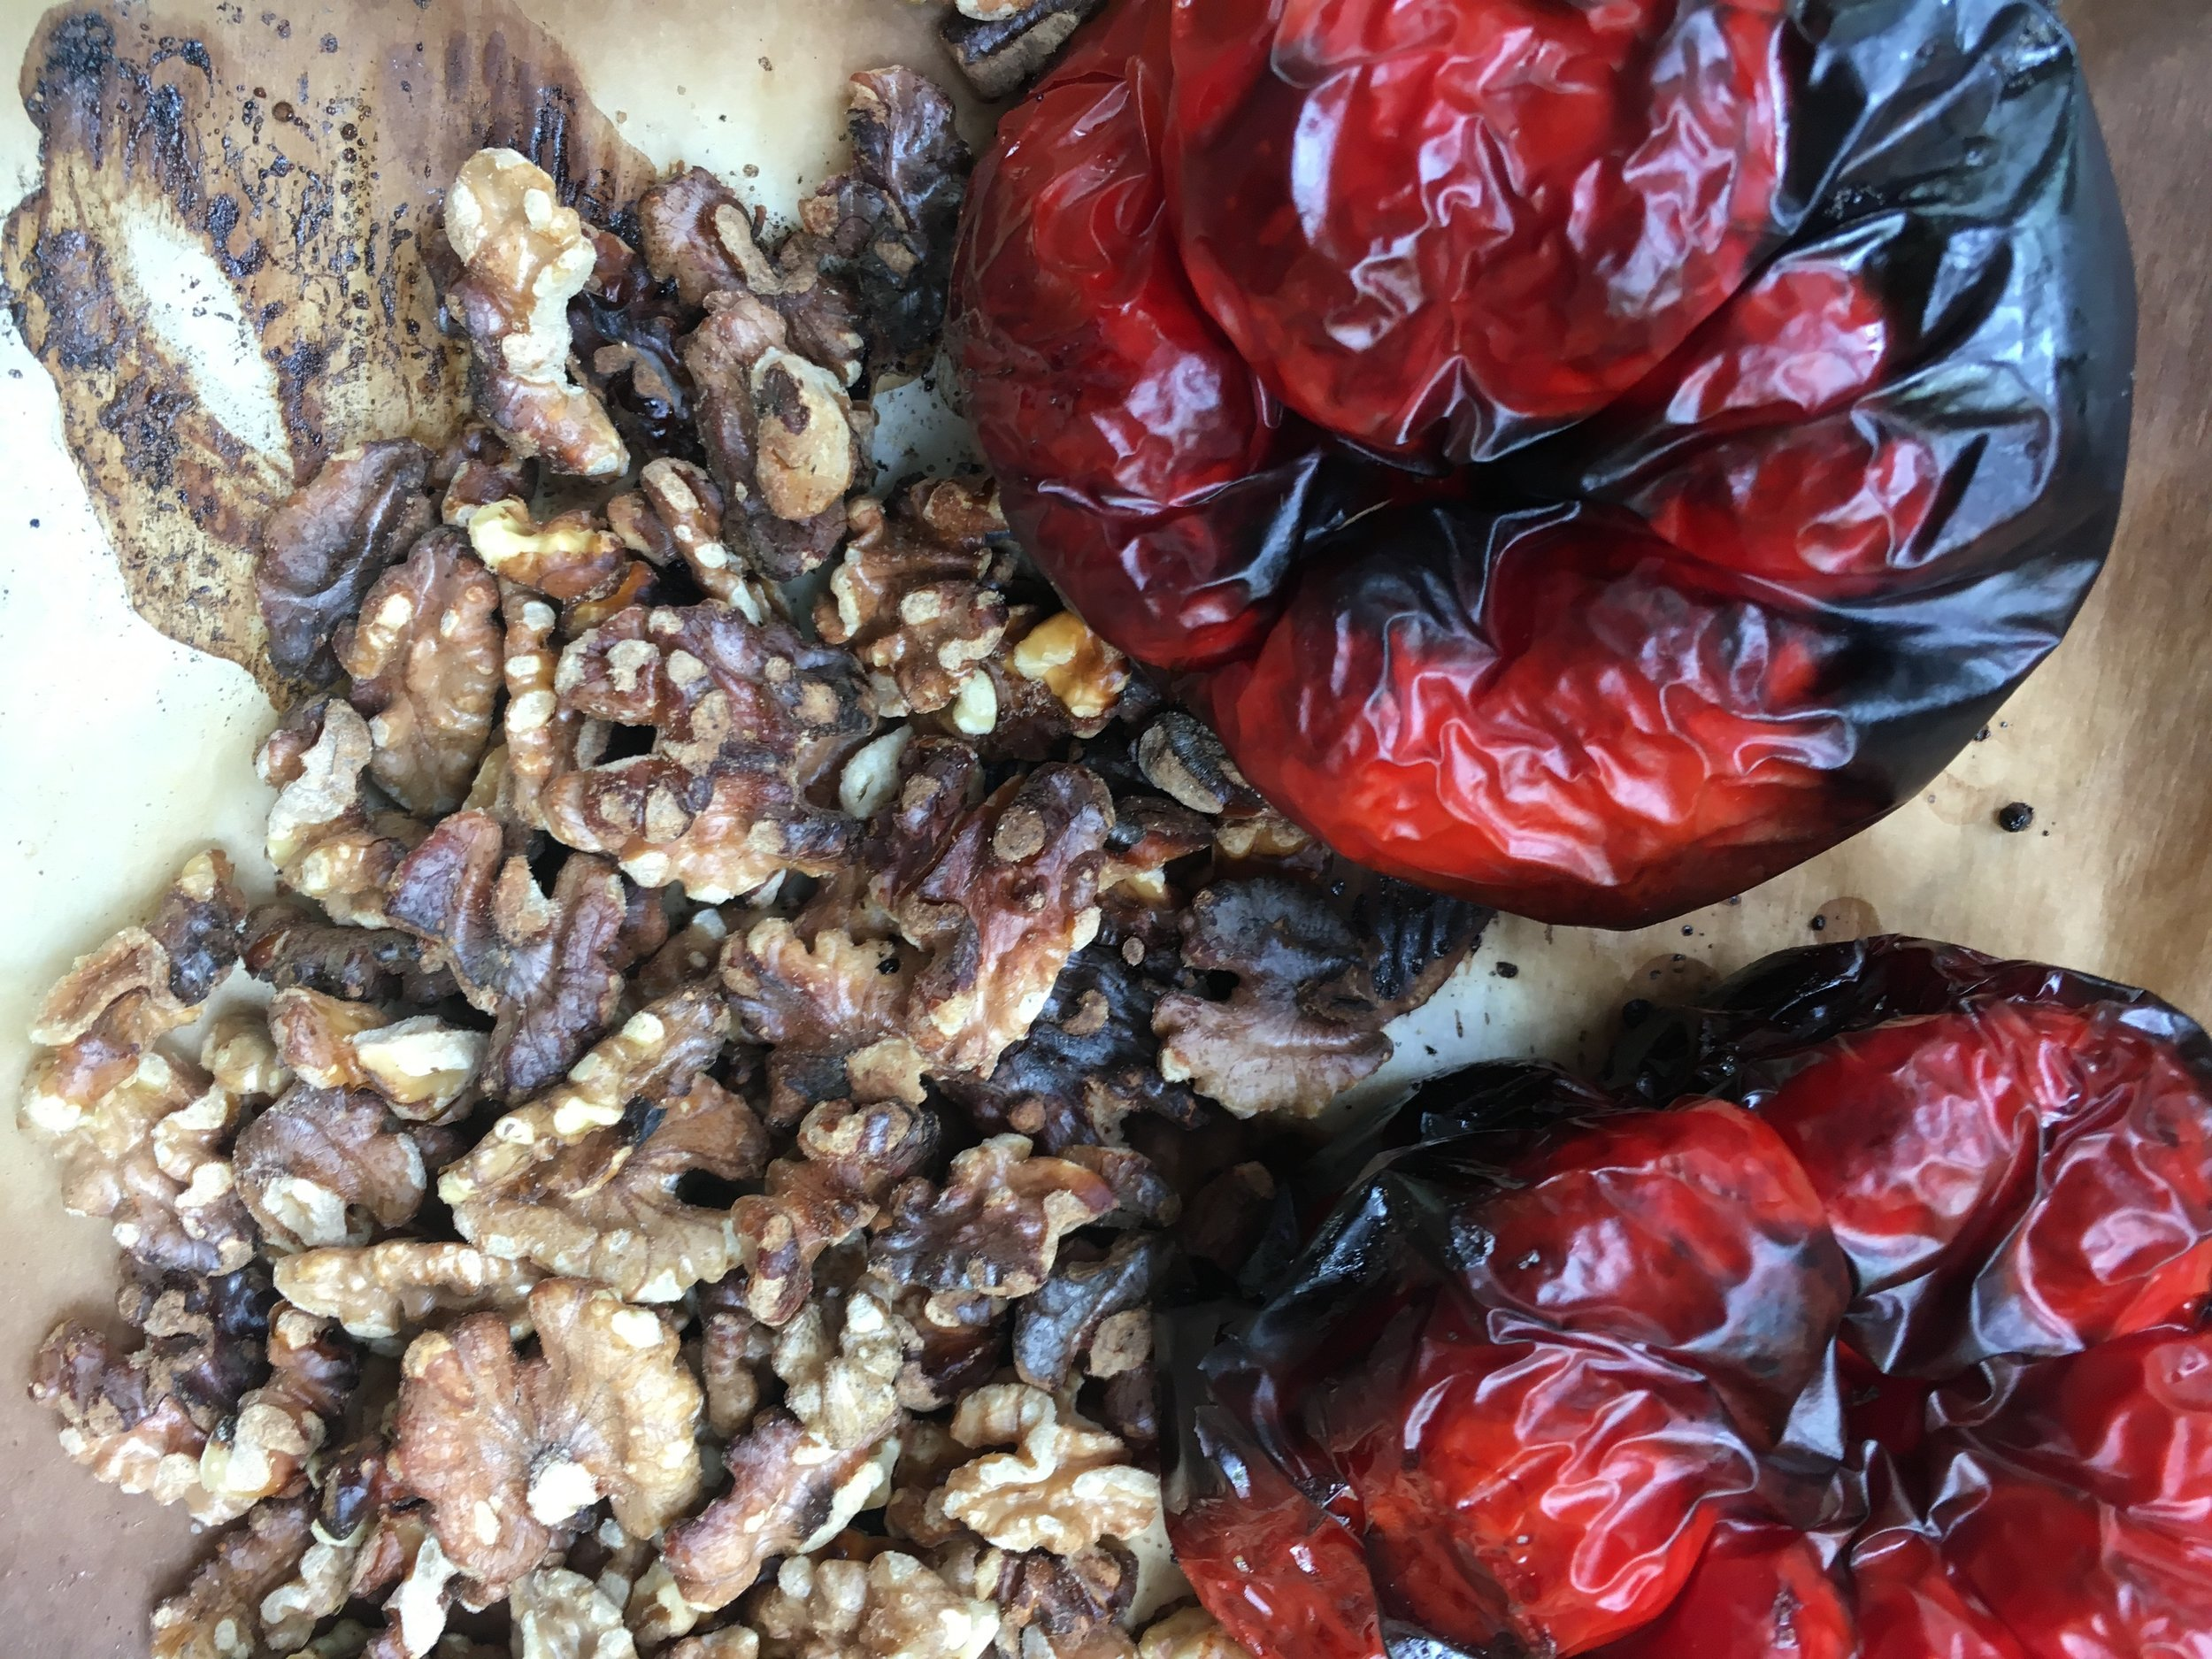 Roasted peppers and walnuts should look like this.